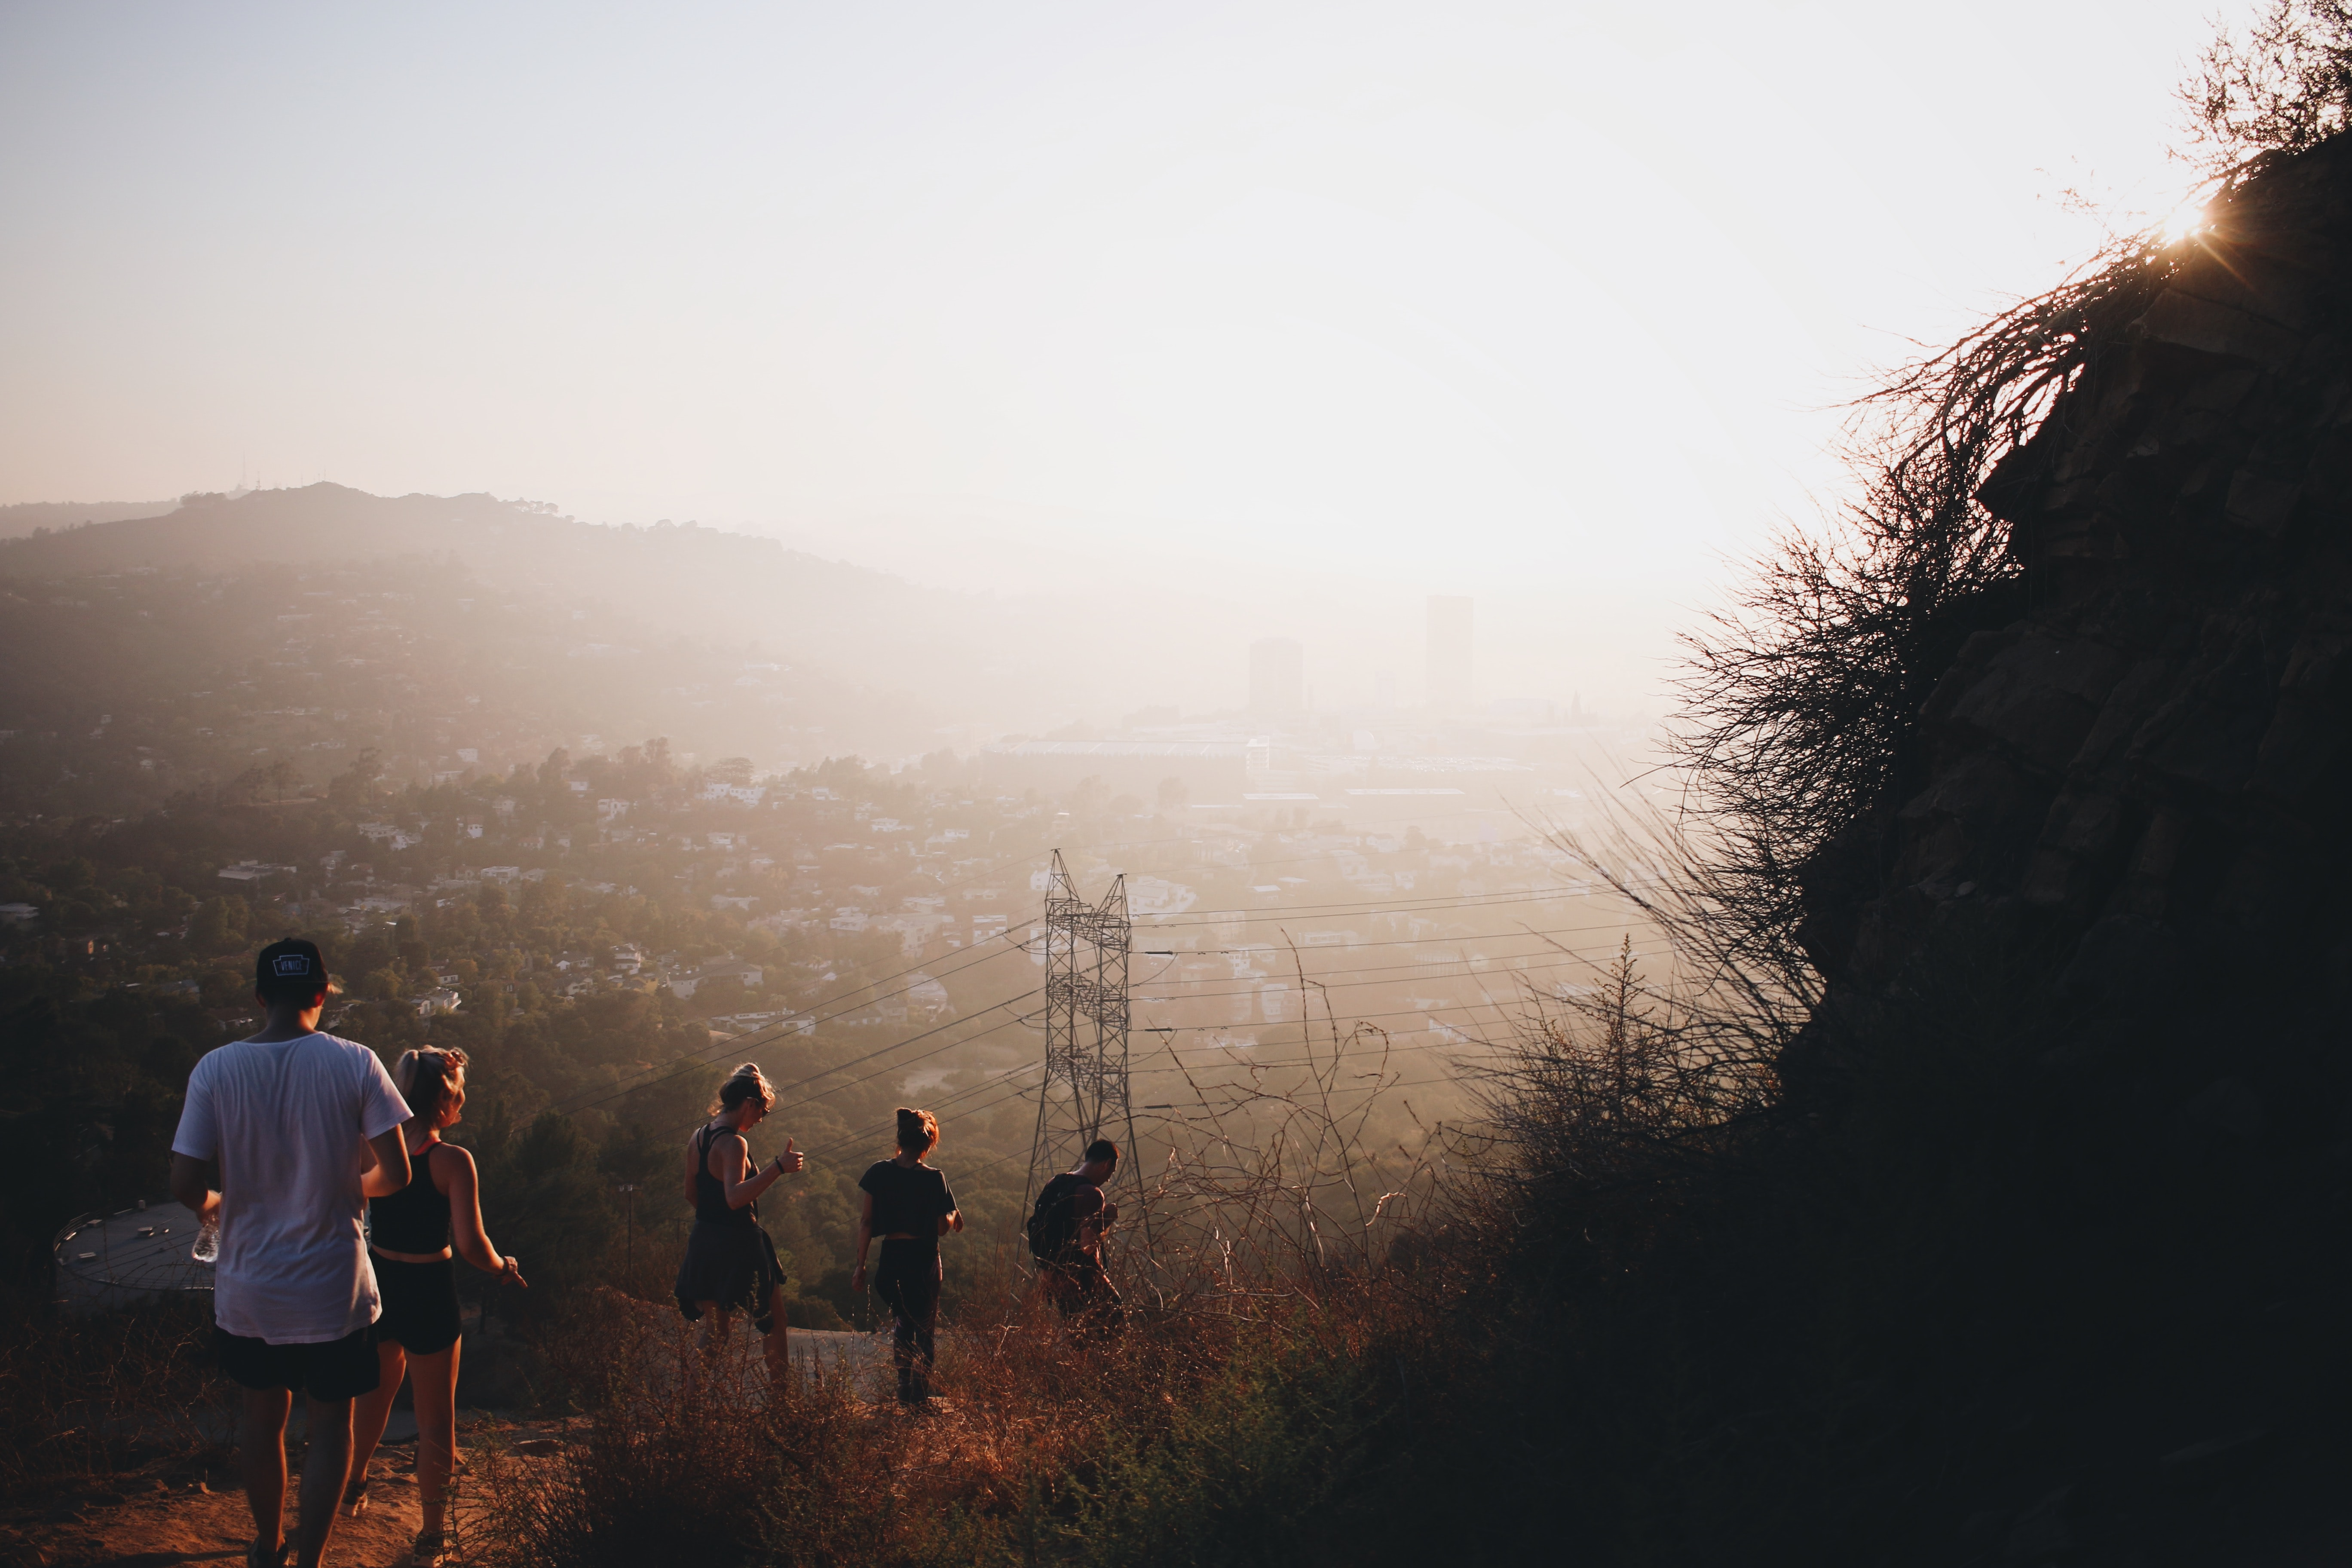 A group of friends hiking during sunrise or sunset in Los Angeles